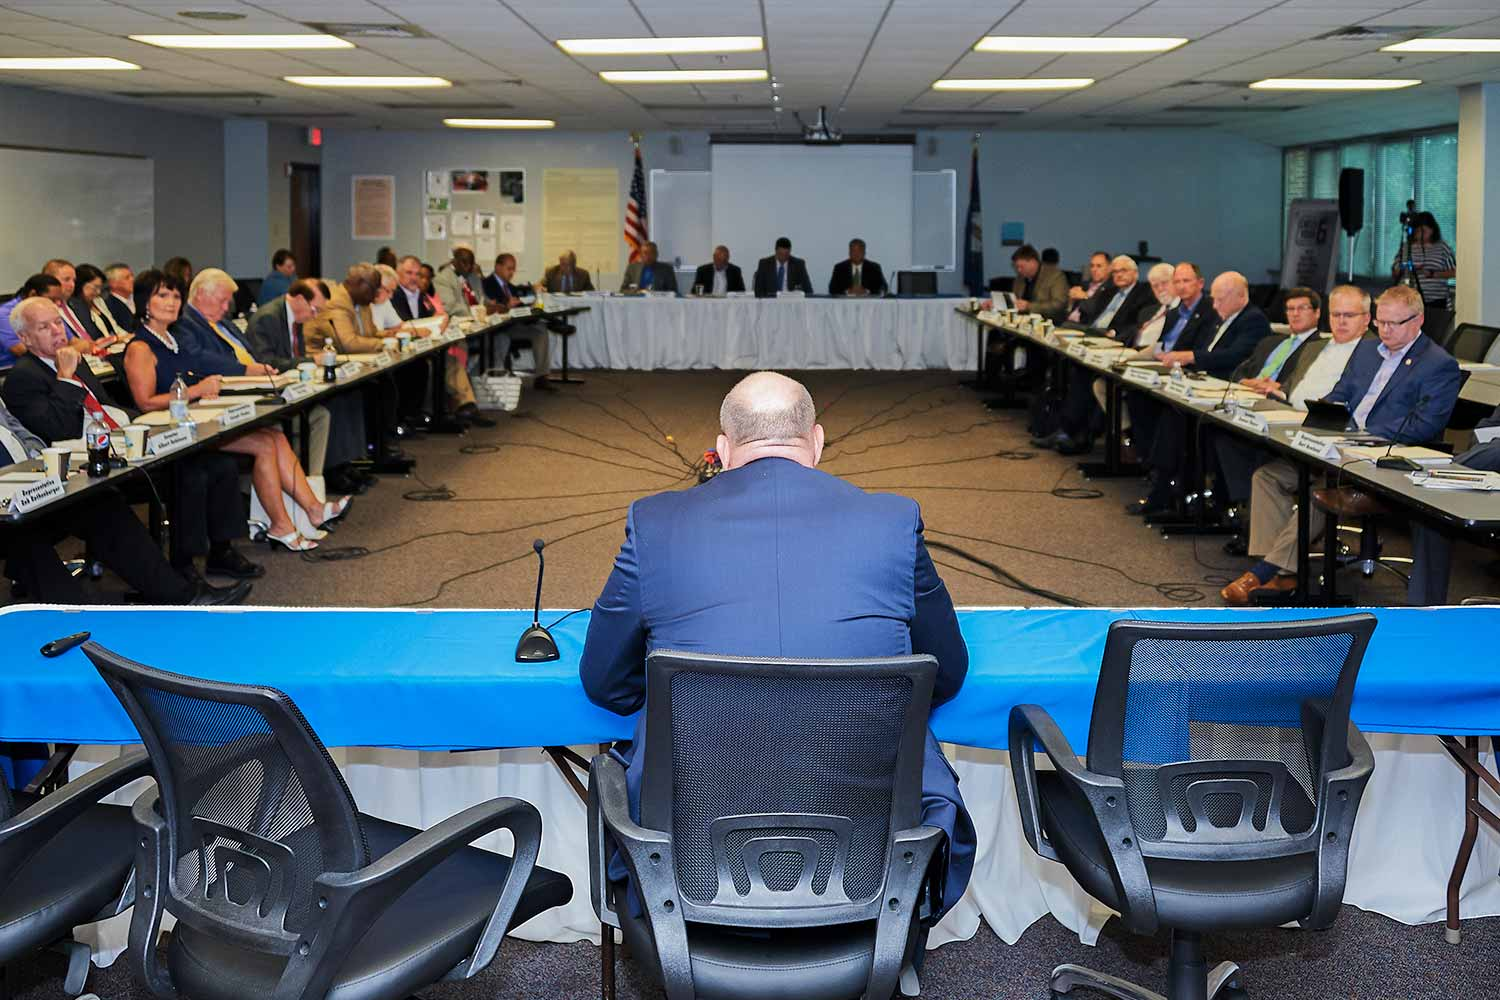 Department of Criminal Justice Training Commissioner Mark Filburn addresses legislators during a joint committee meeting hosted on DOCJT's Richmond campus. (Photo by Jim Robertson)